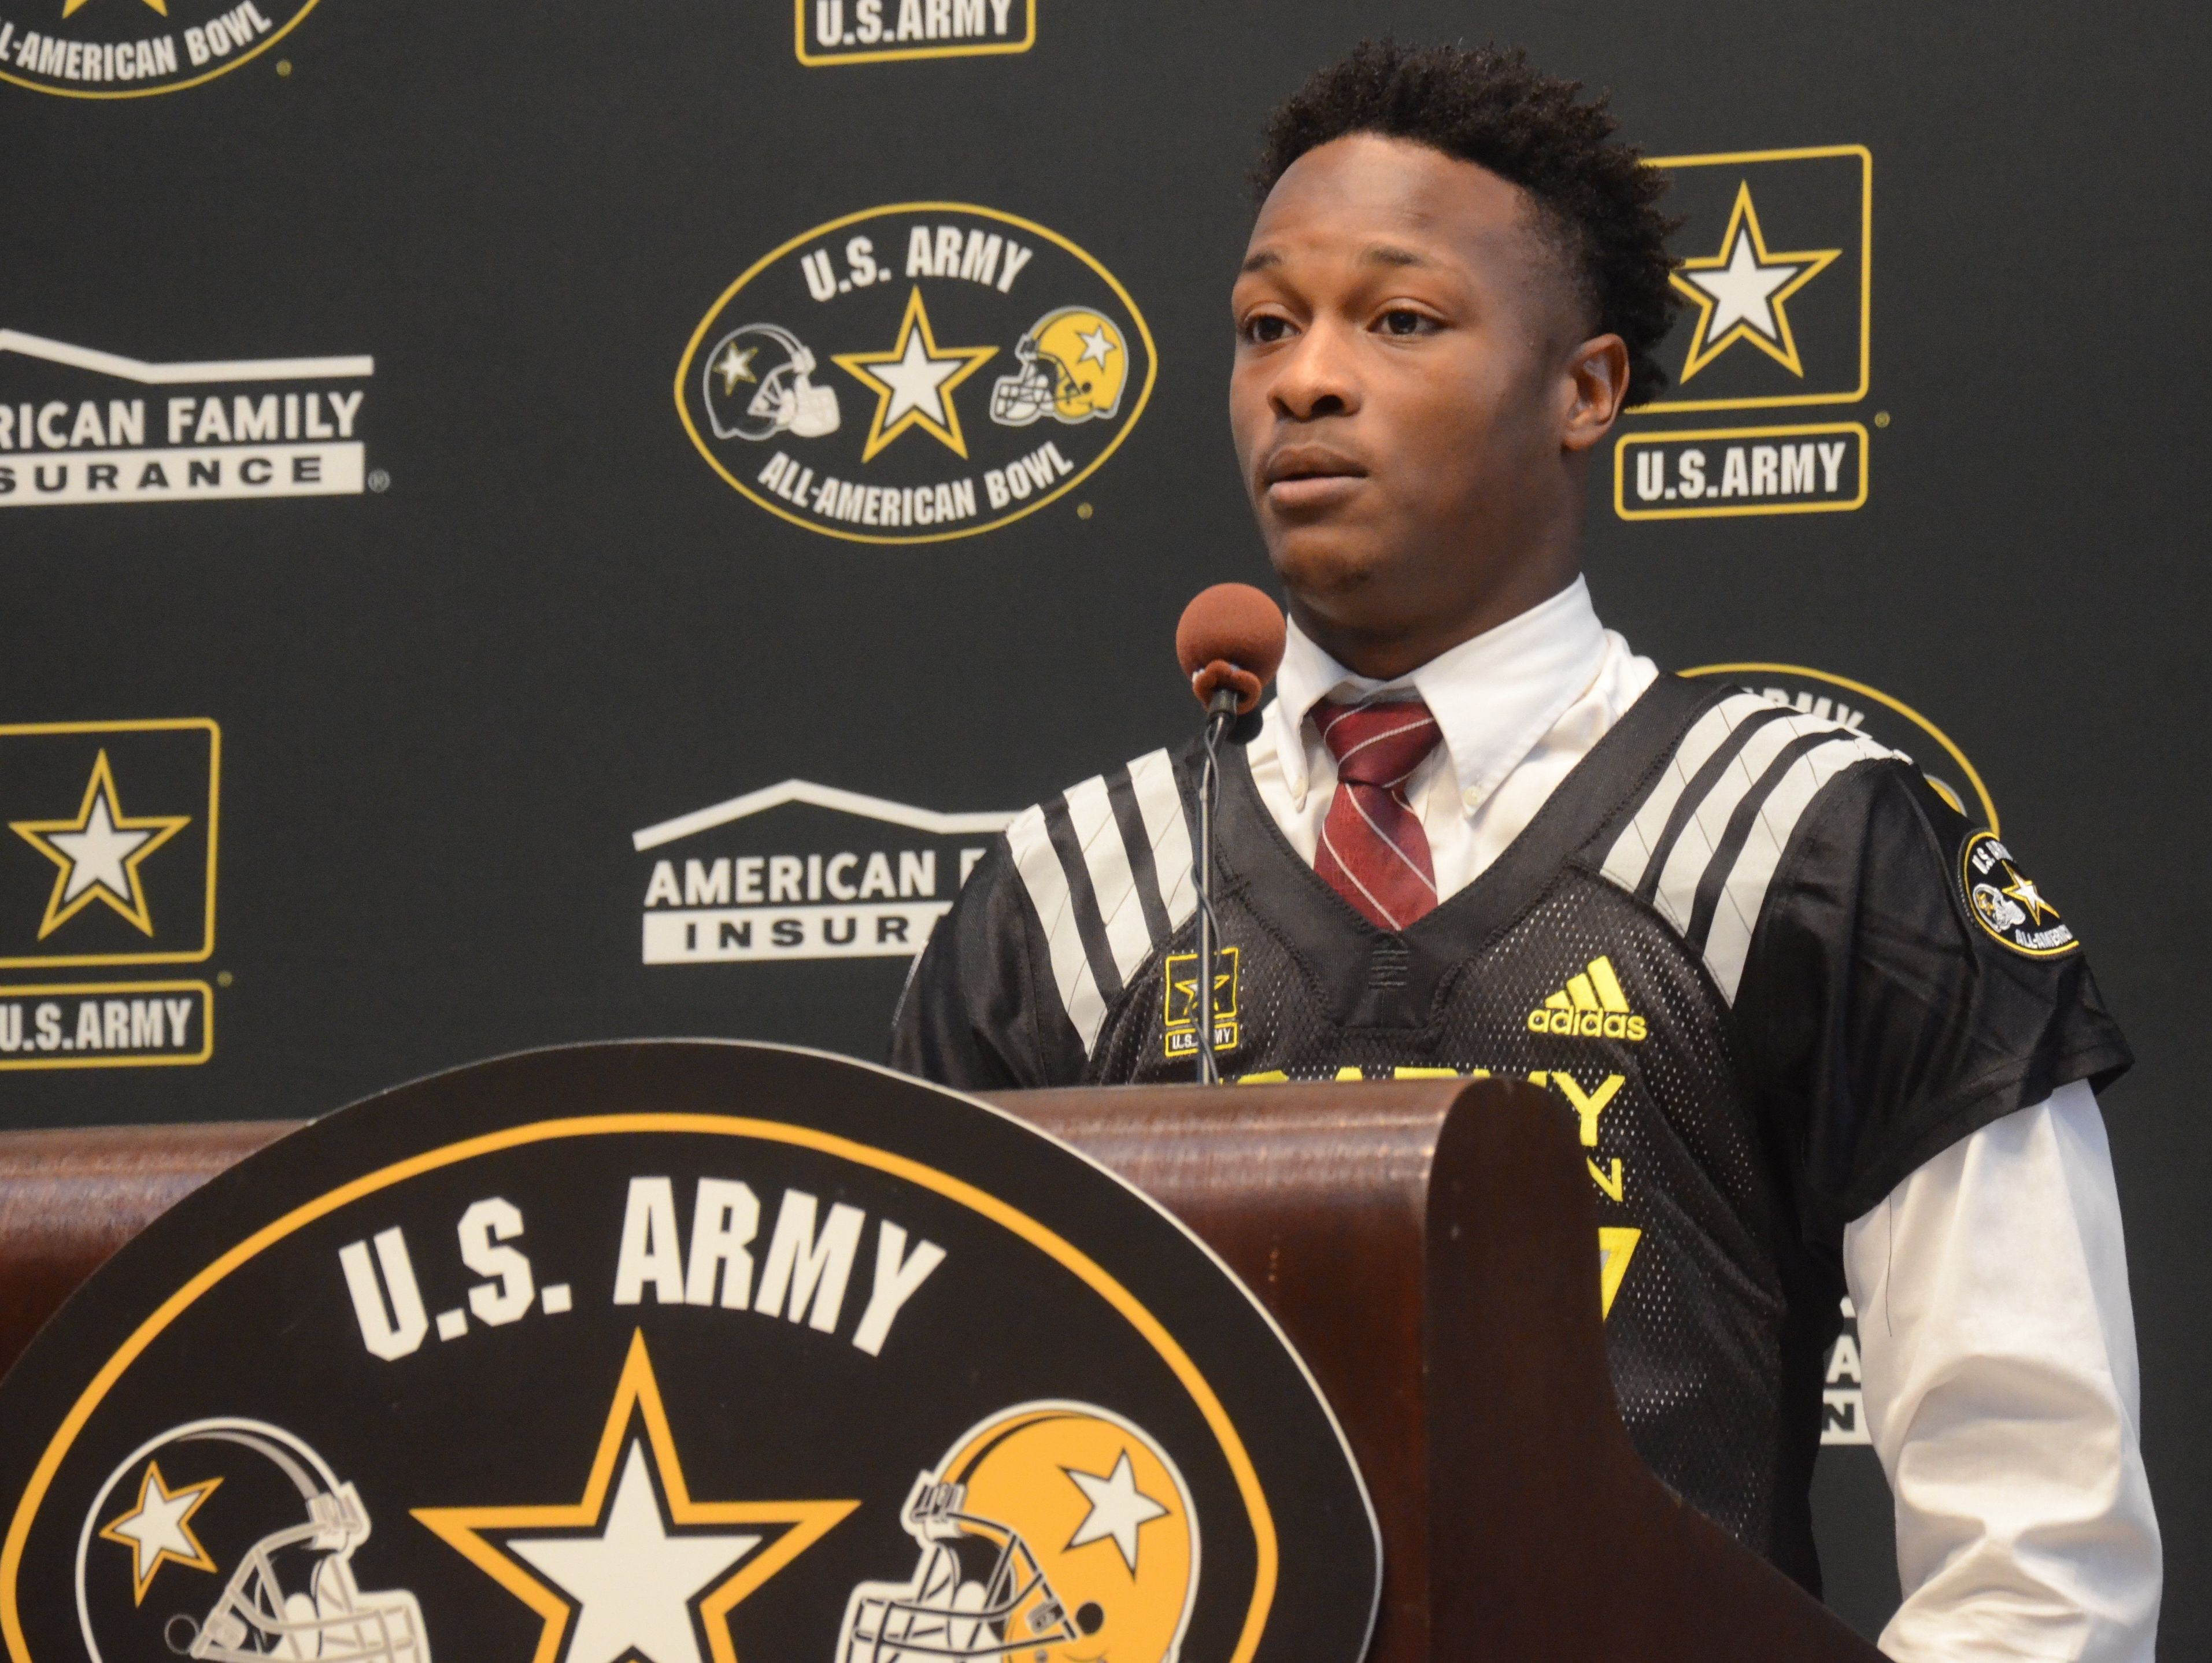 MBA running back Ty Chandler was presented with an honorary U.S. Army All-American jersey on Thursday.